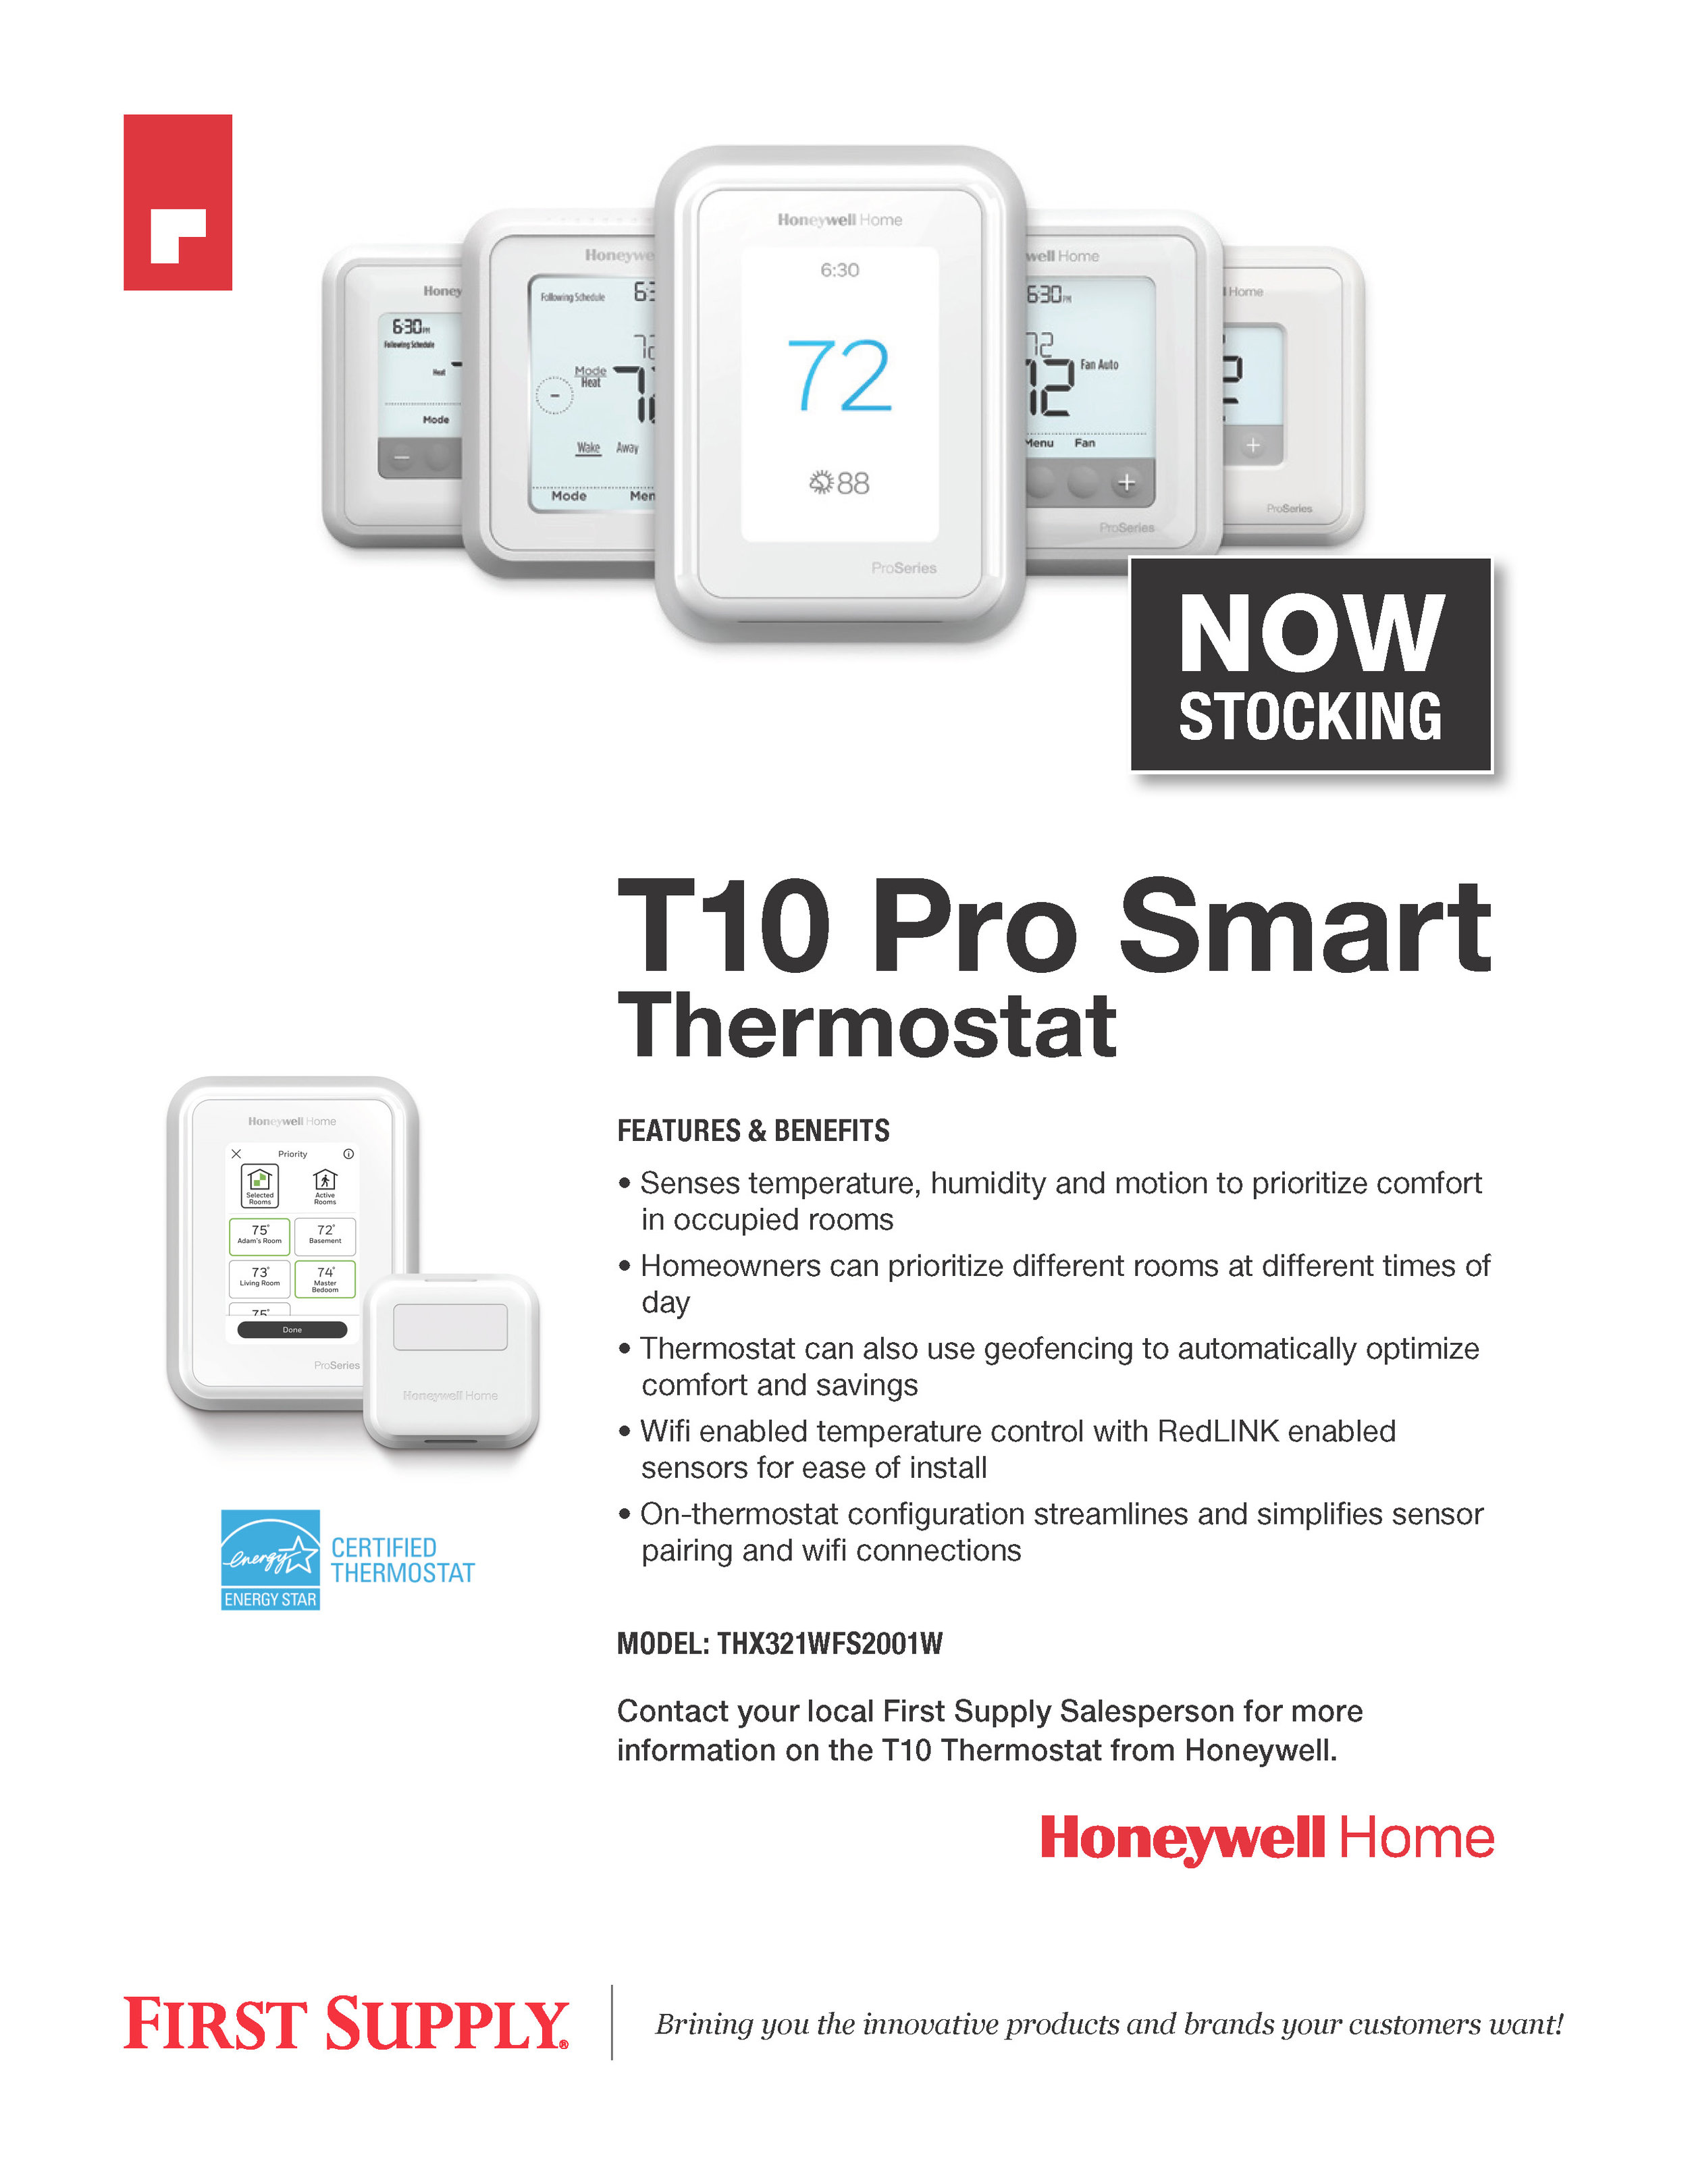 Honeywell T10 Pro Smart Thermostat [ download pdf ]